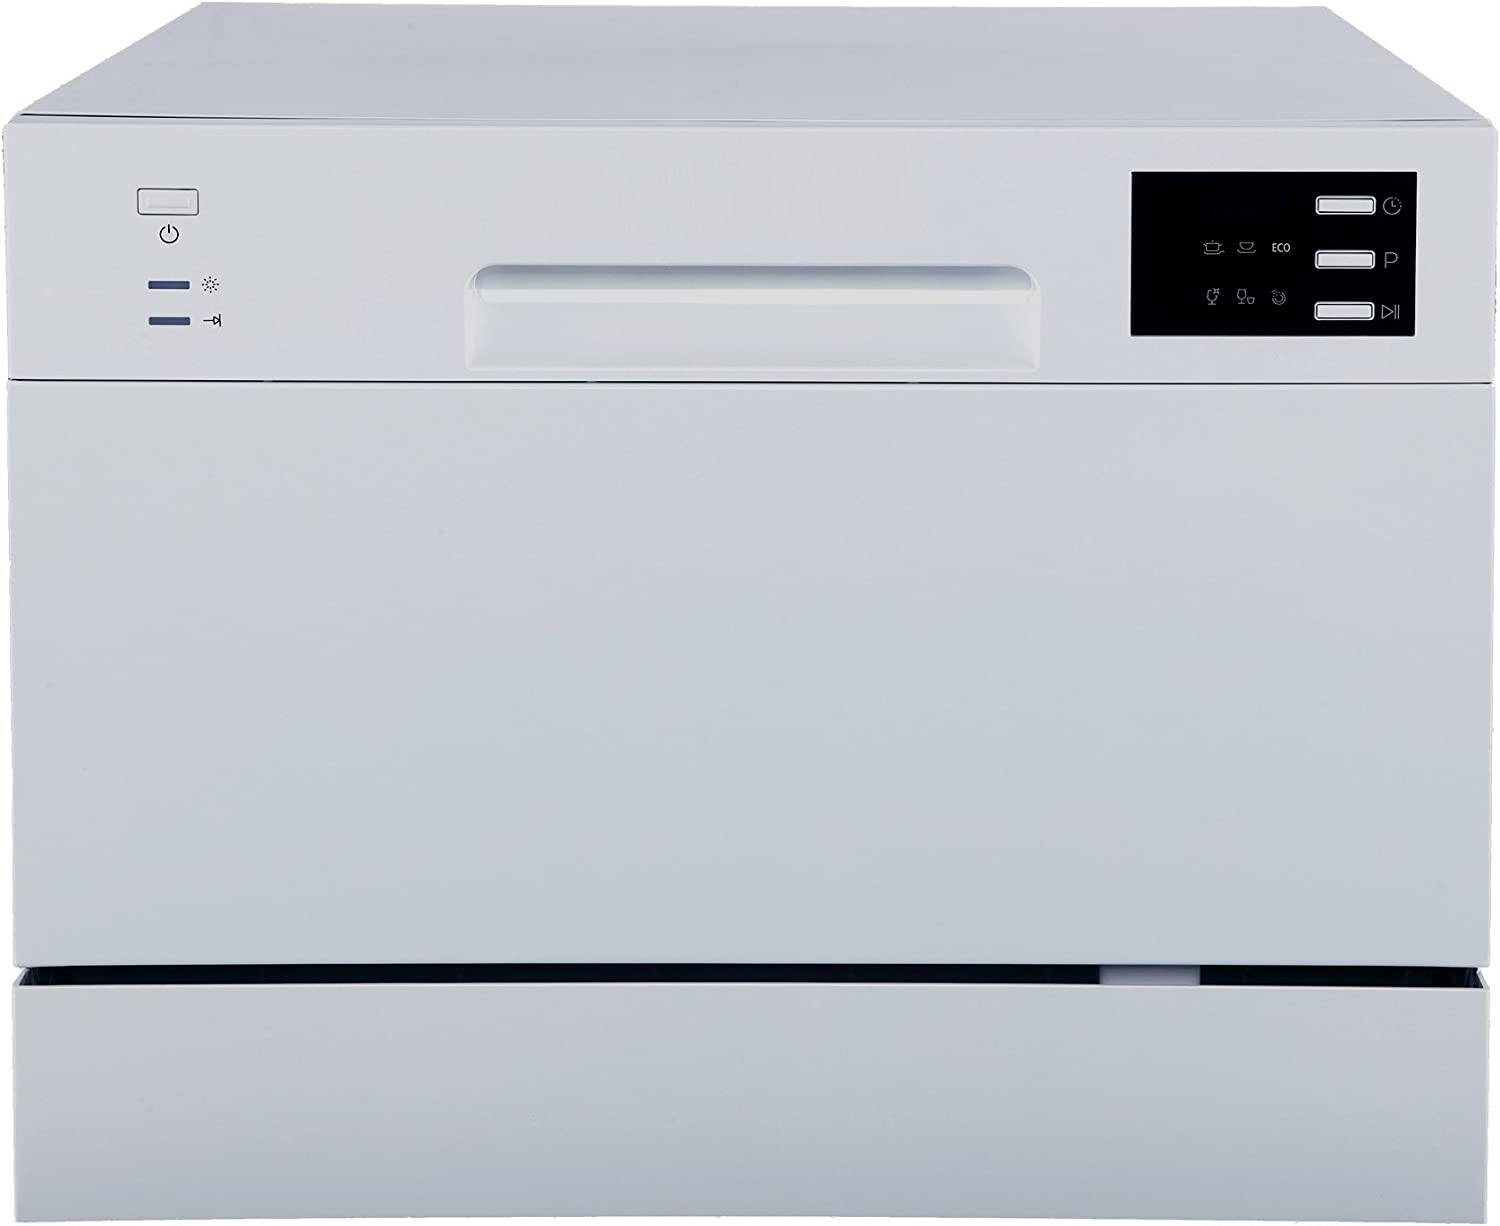 SPT SD-2225DS Compact Countertop Dishwasher/Delay Start-Energy Star Portable Dishwasher with Stainless Steel Interior and 6 Place Settings Rack Silverware Basket/Apartment Office Home Kitchen, Silver